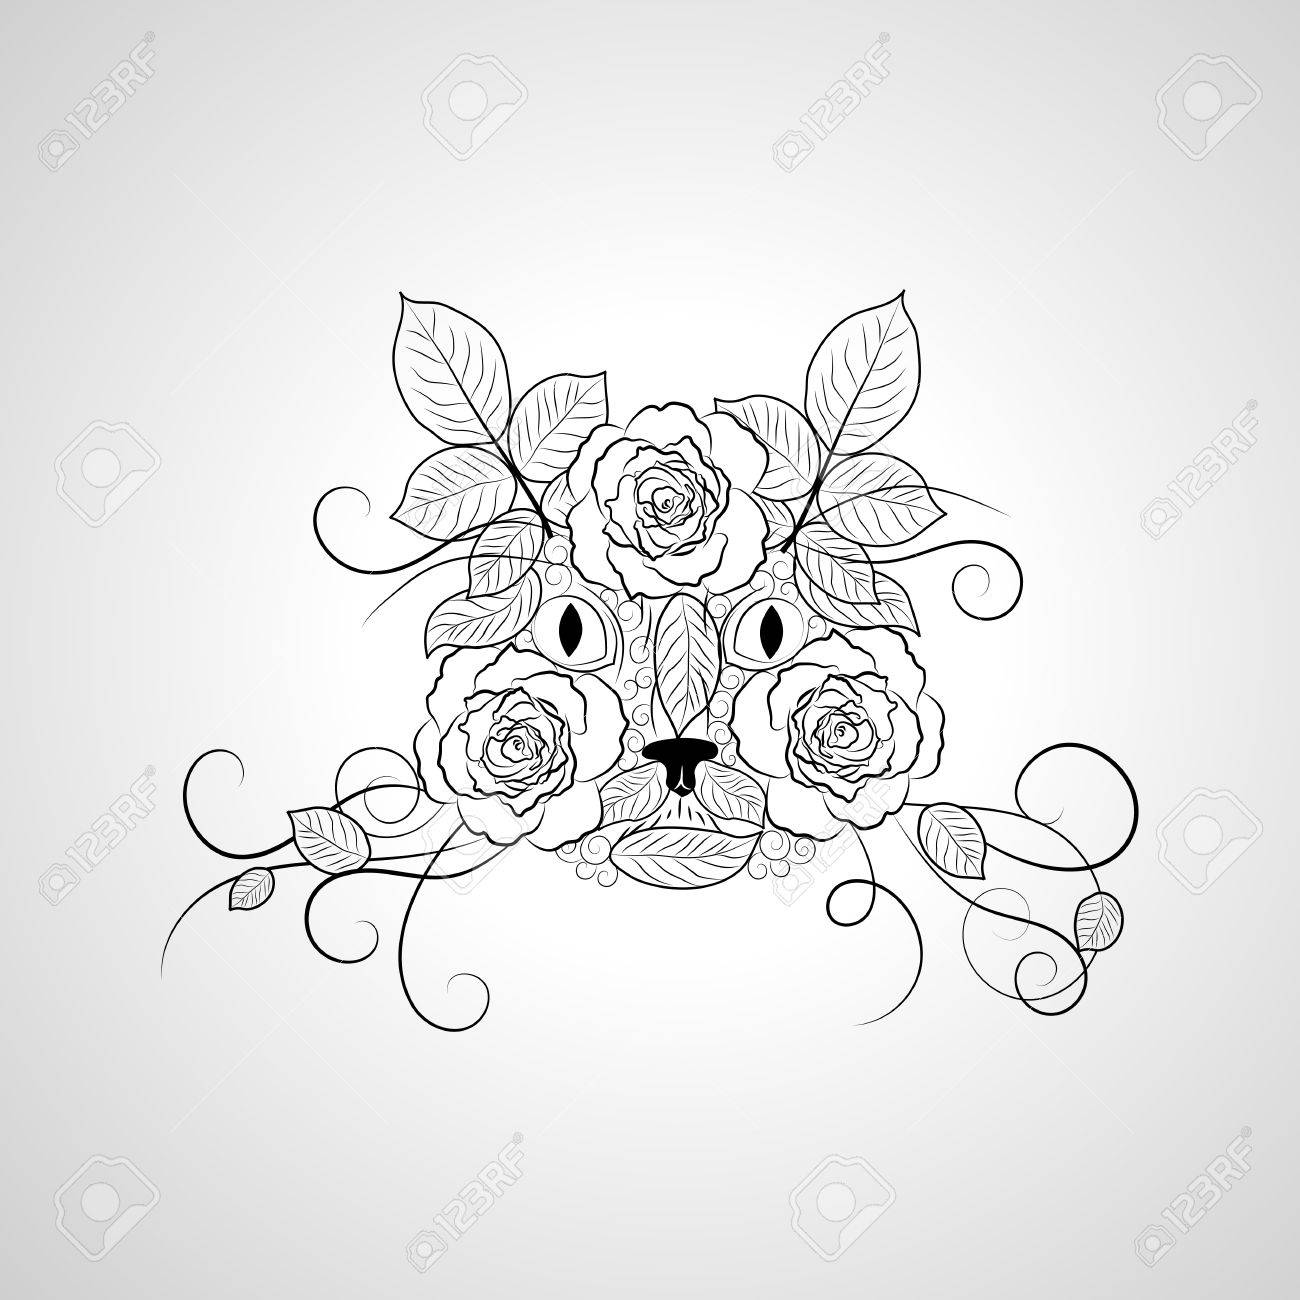 1300x1300 Hand Drawn Ornate Graphic Black And White Cat Face. Royalty Free